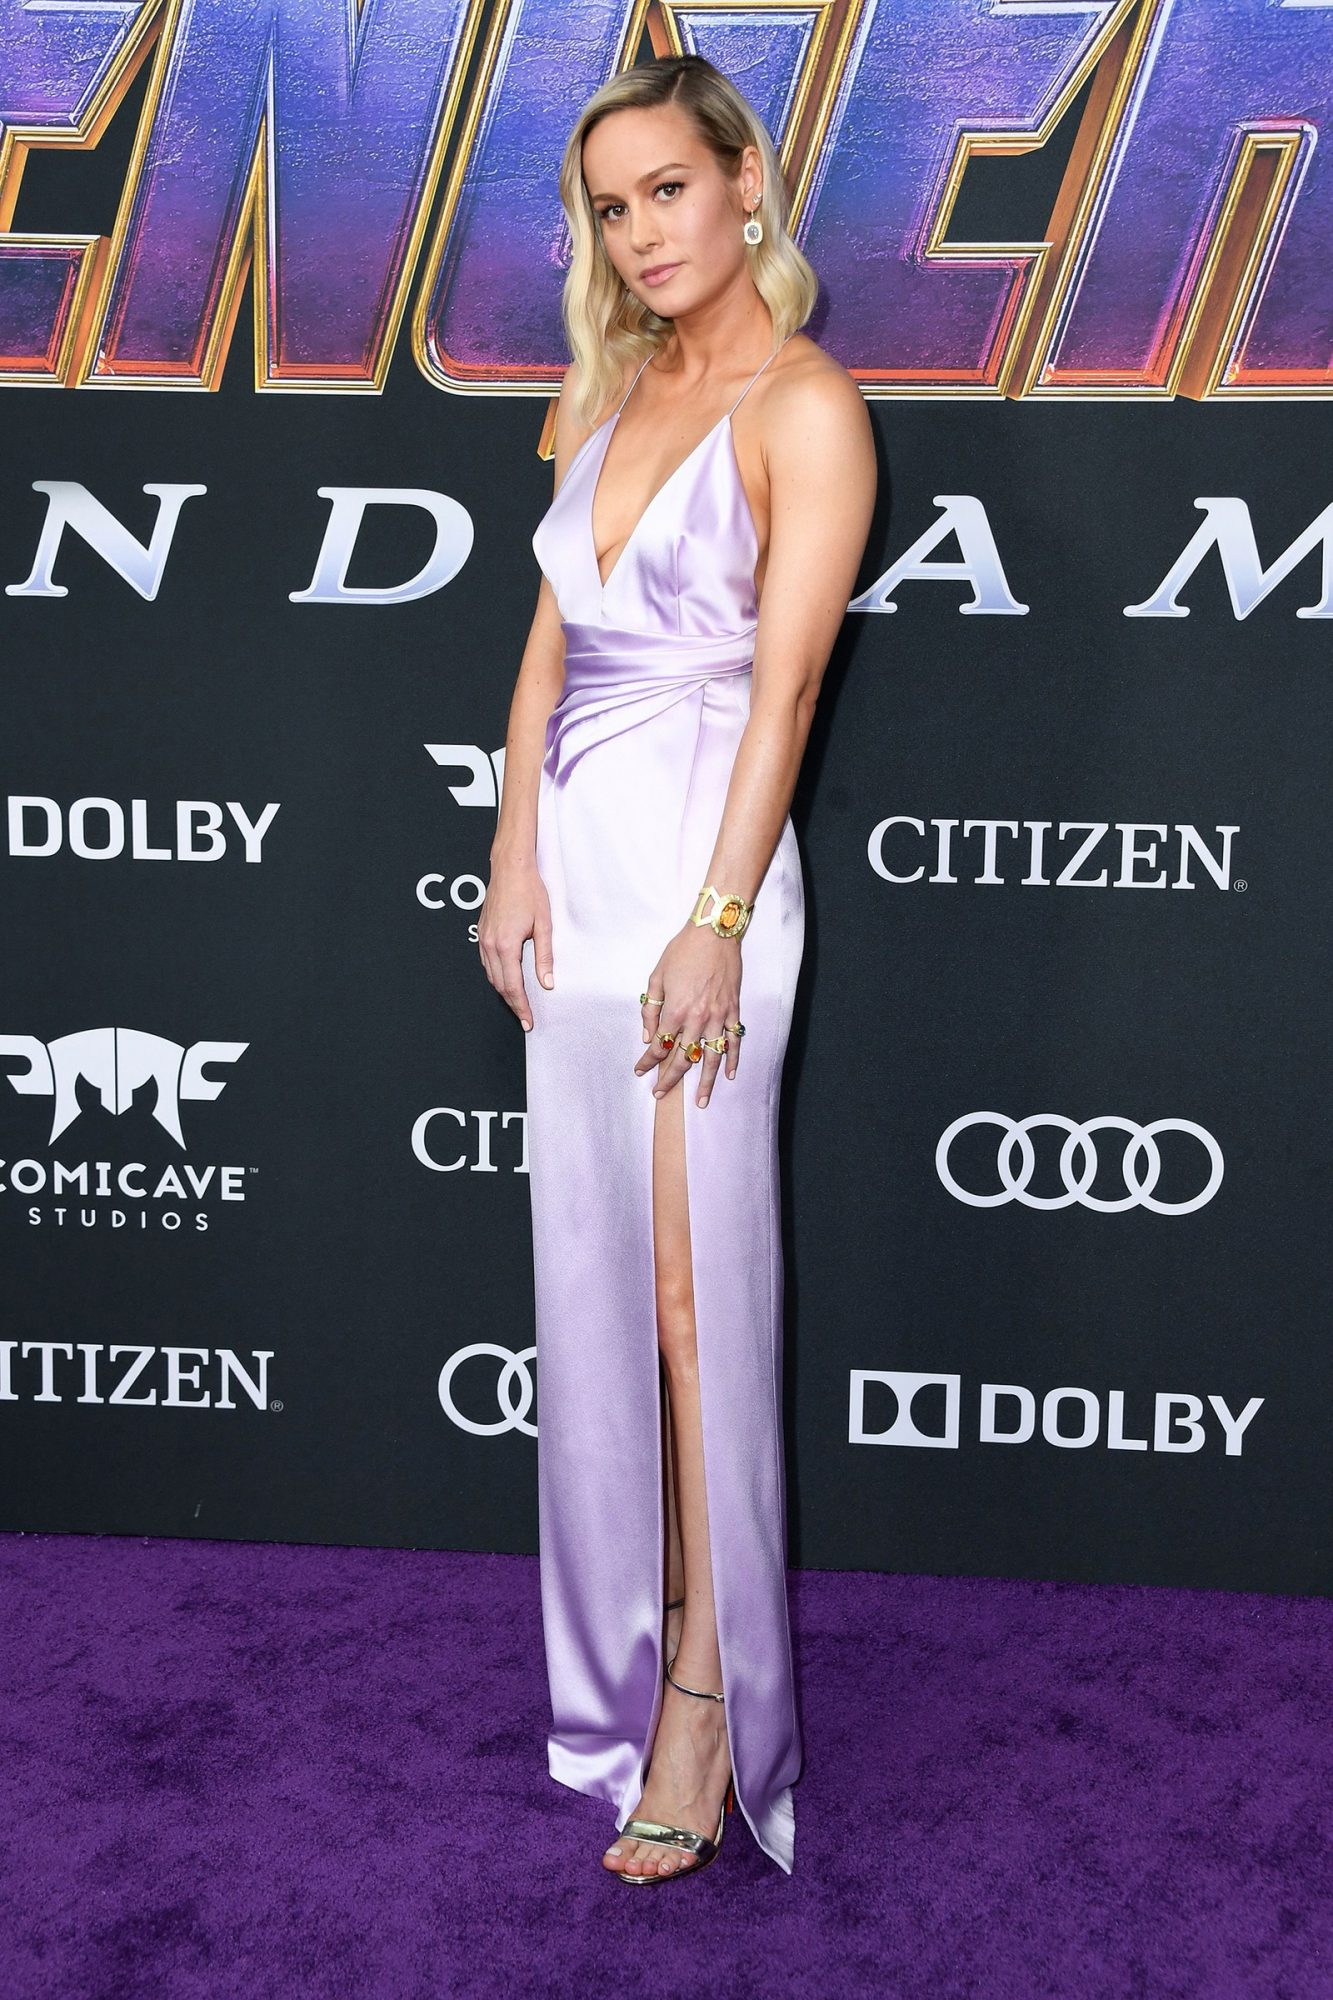 Brie Larson in hot dress at Avengers Endgame premiere